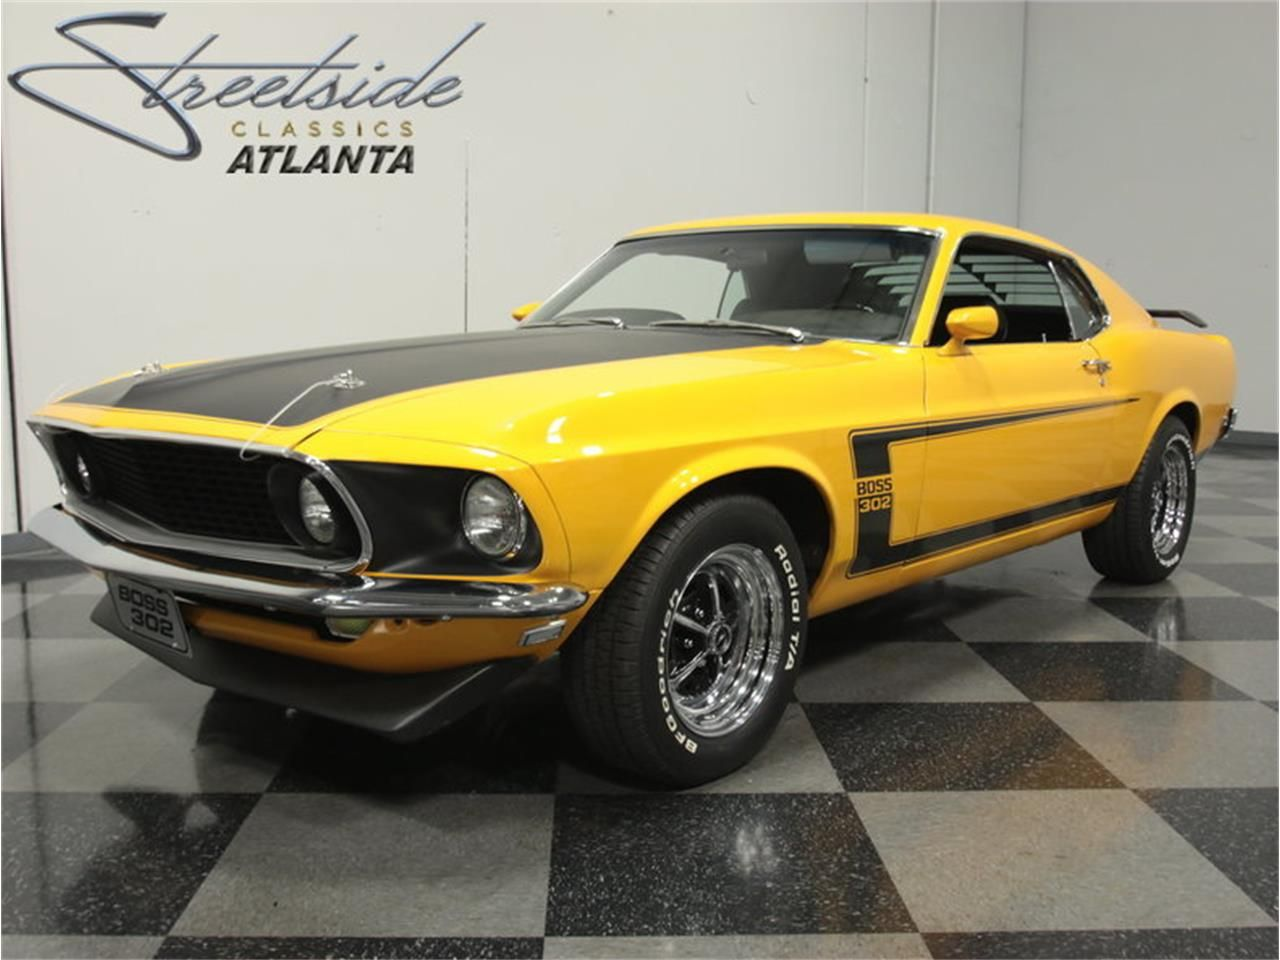 1969 Ford Boss 302 Mustang Yellow With Black Stripes Ford Mustang Boss Mustang Boss Ford Mustang Car